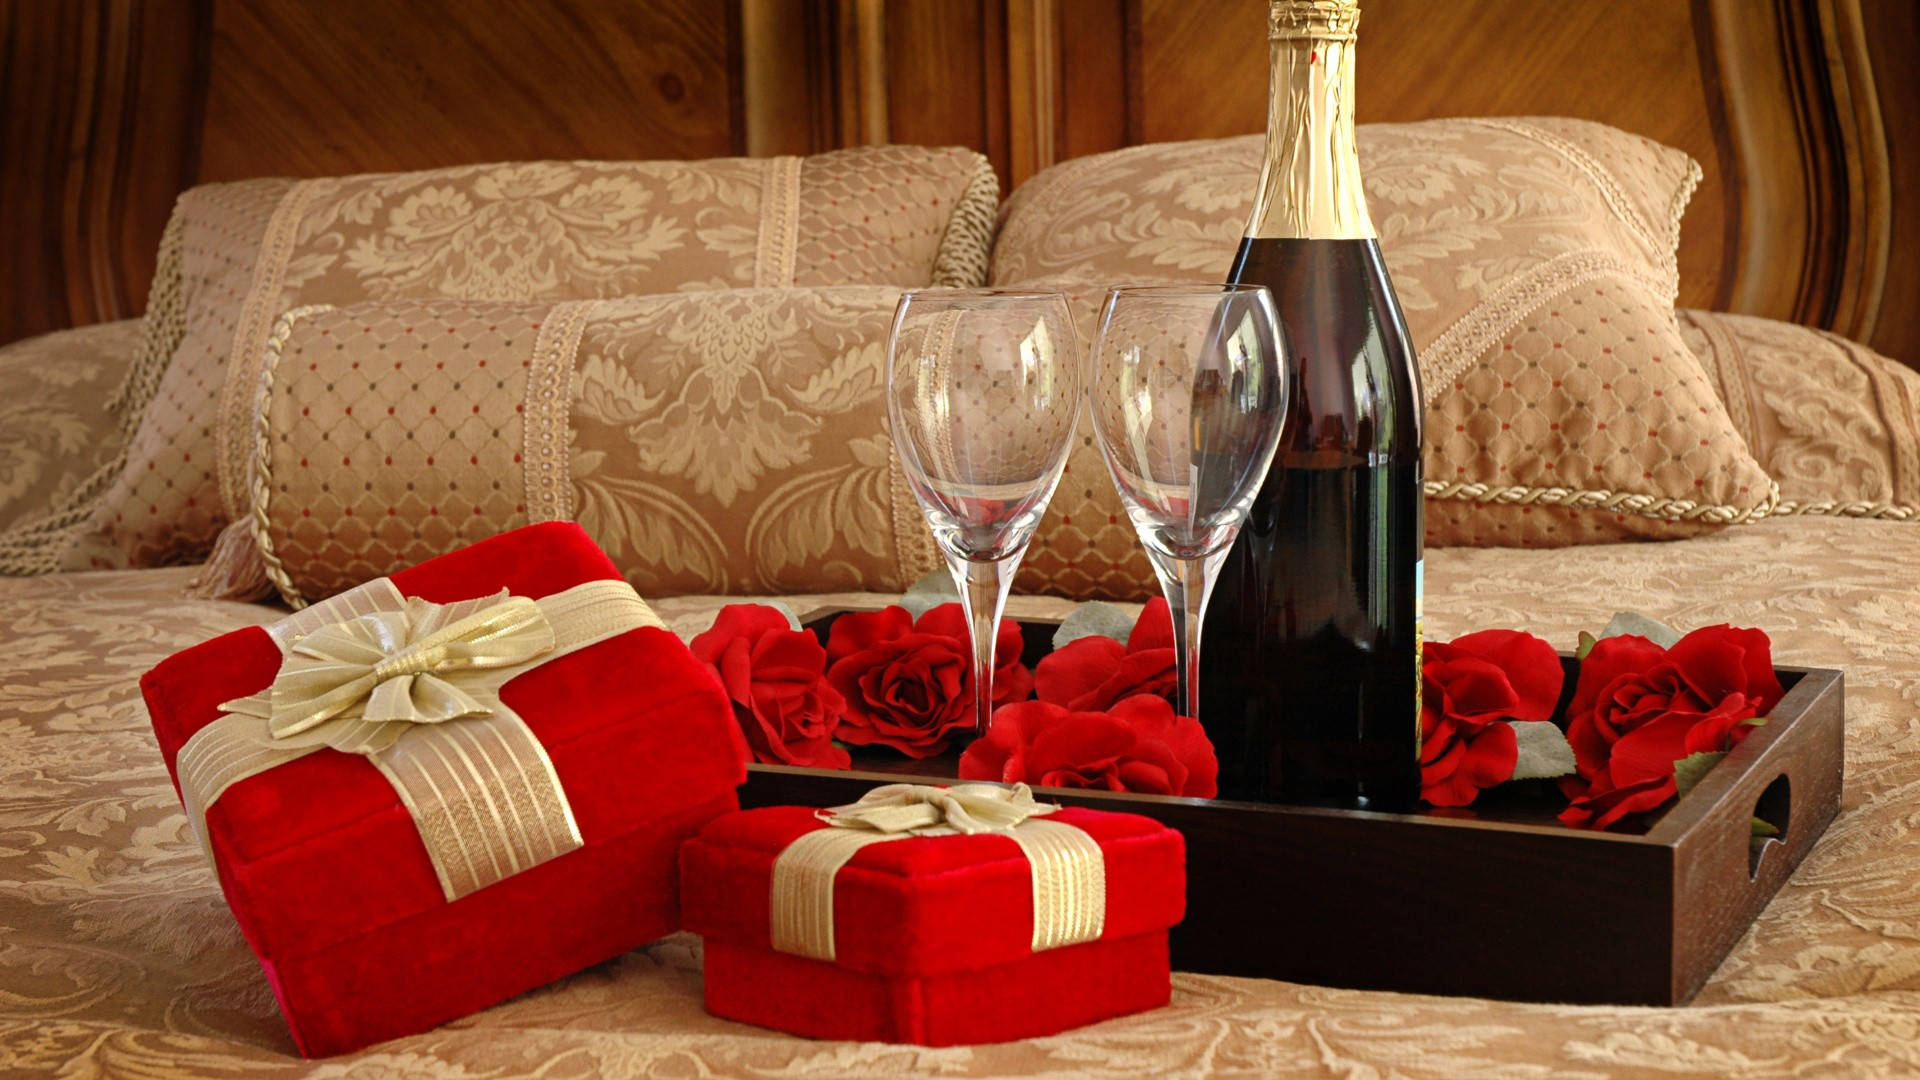 Best Gifts For Valentines Day: Vday Gifts For Her